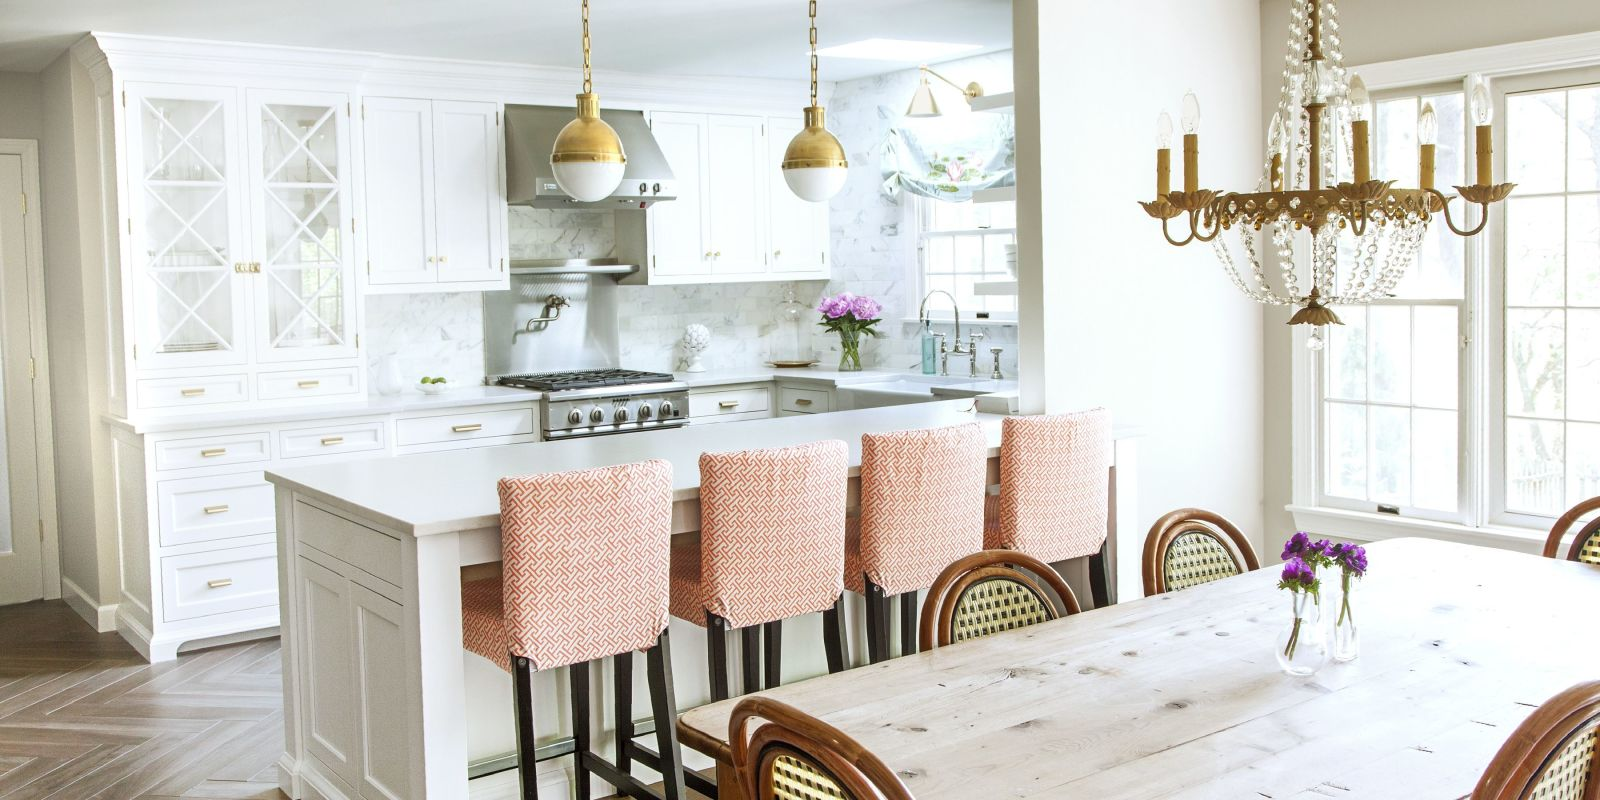 the island kitchen 16 chic accessories that glam up your kitchen immediately 2716